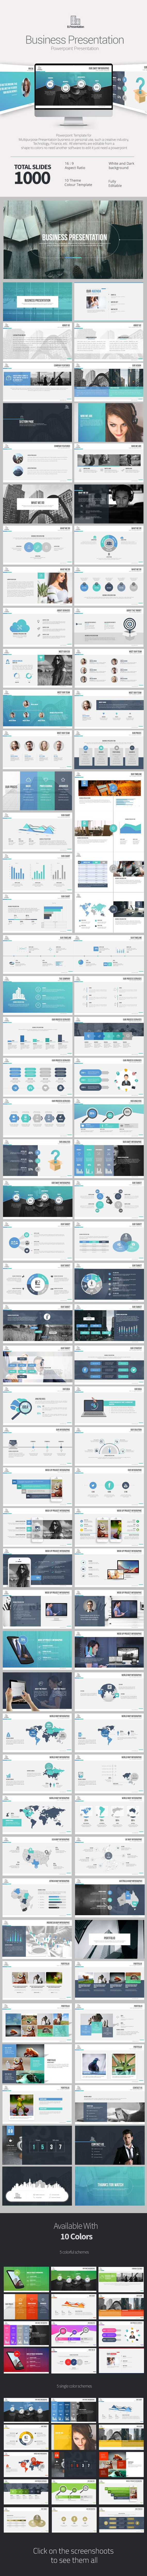 Business Presentation Templates For Multipurpose Presentation Business Or Personal Use, Such A Creative ,finance.All Element Are Editable From A Shape To Colors No Need Another Software To Edit It Just Need A PowerPoint